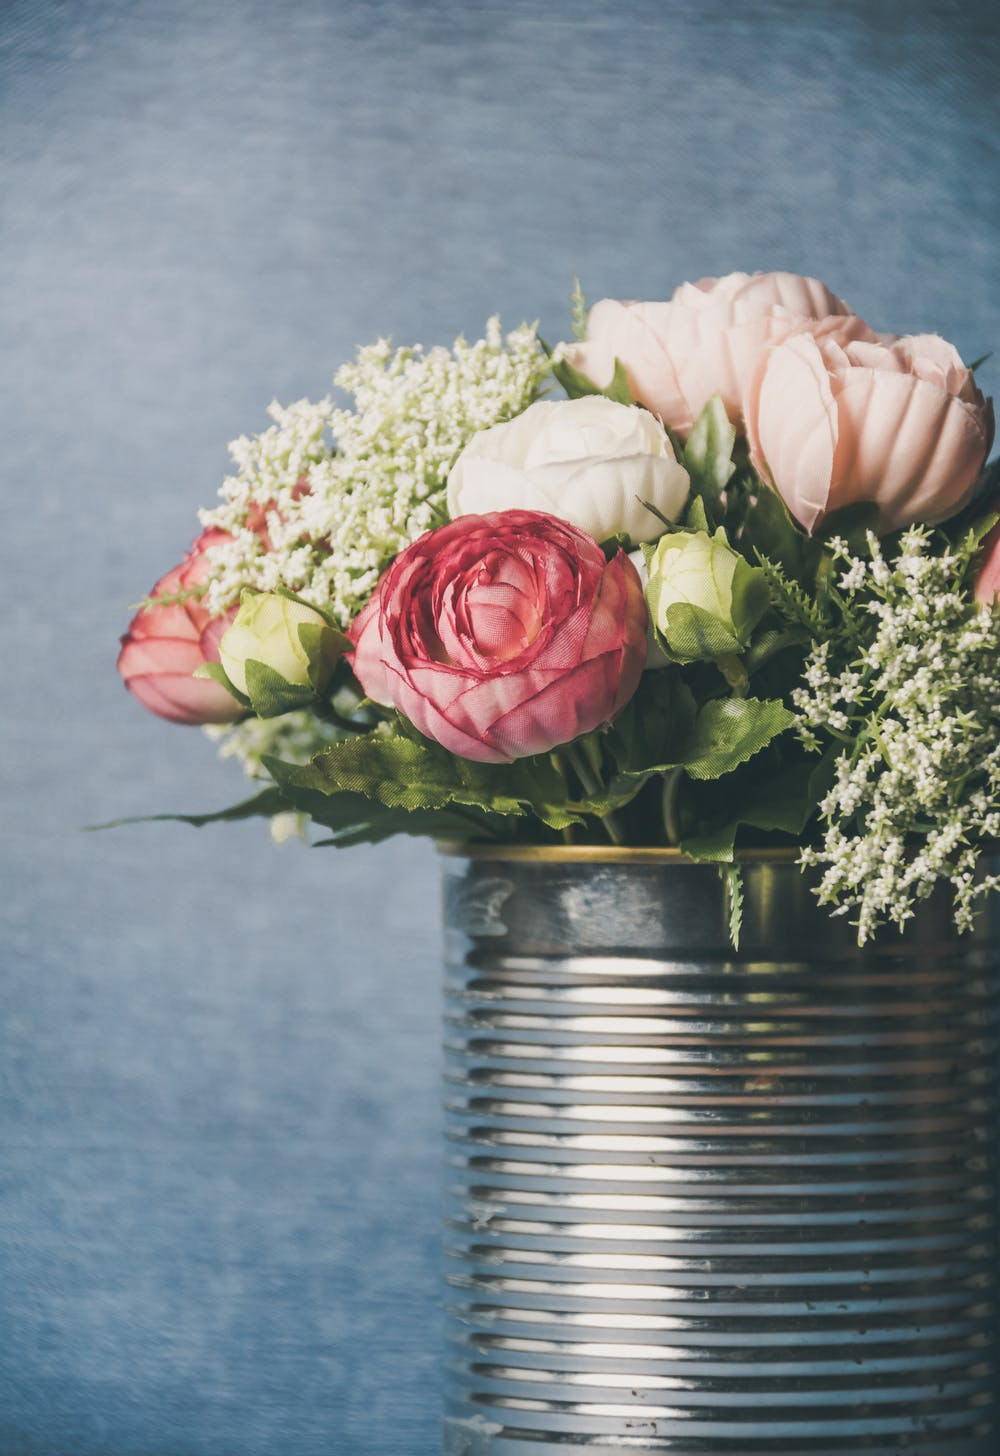 Flowers in the can | Photo: Pexels